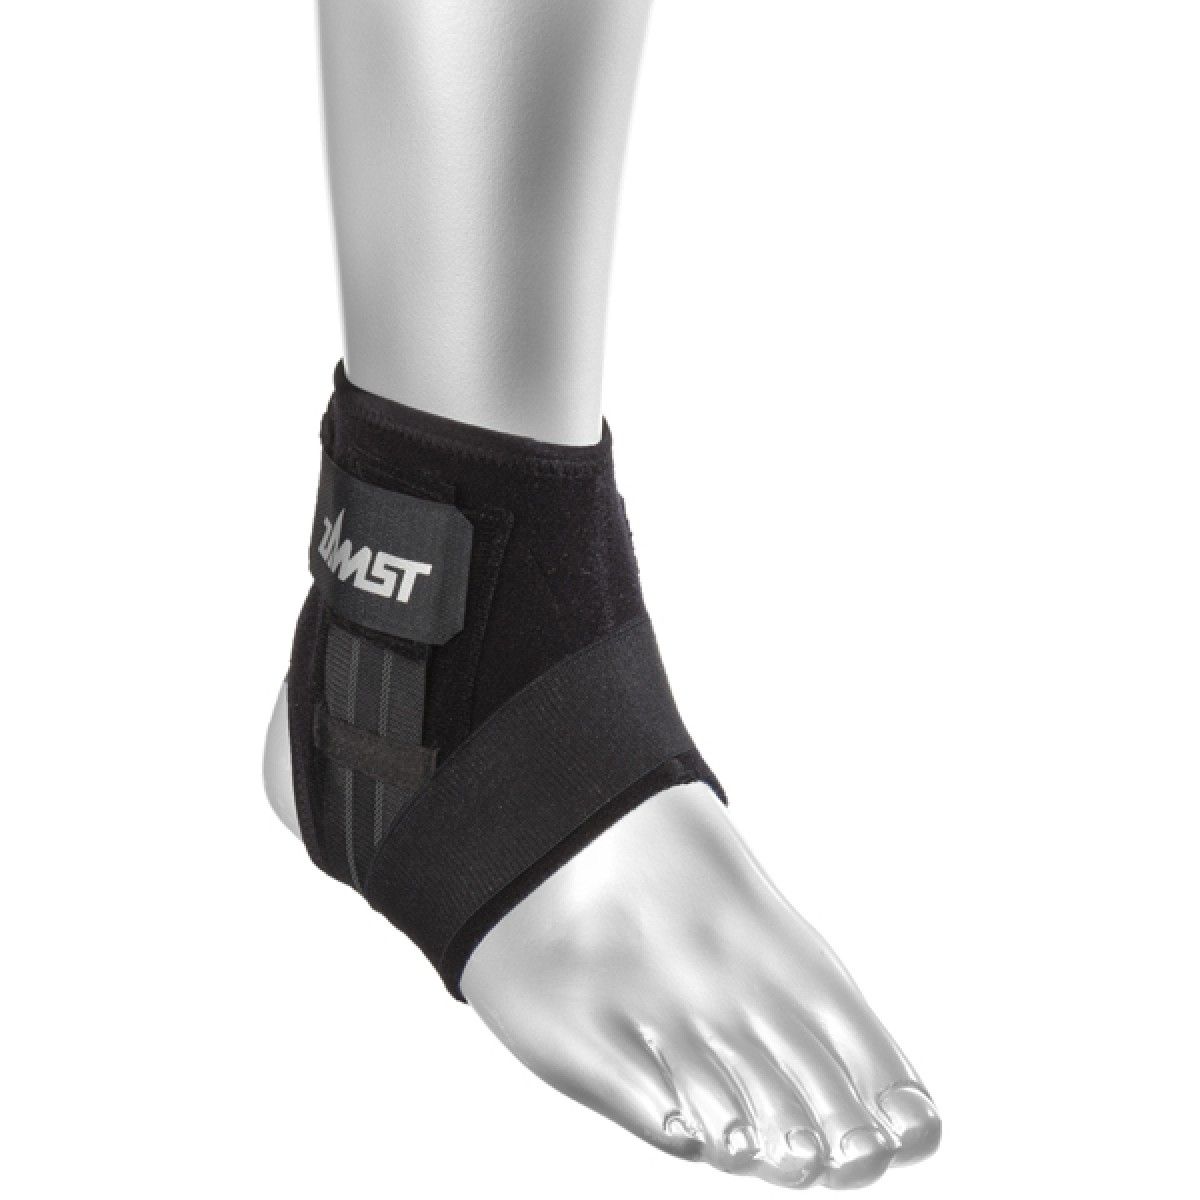 ZAMST A1-S ANKLE STRAP - LEFT FOOT